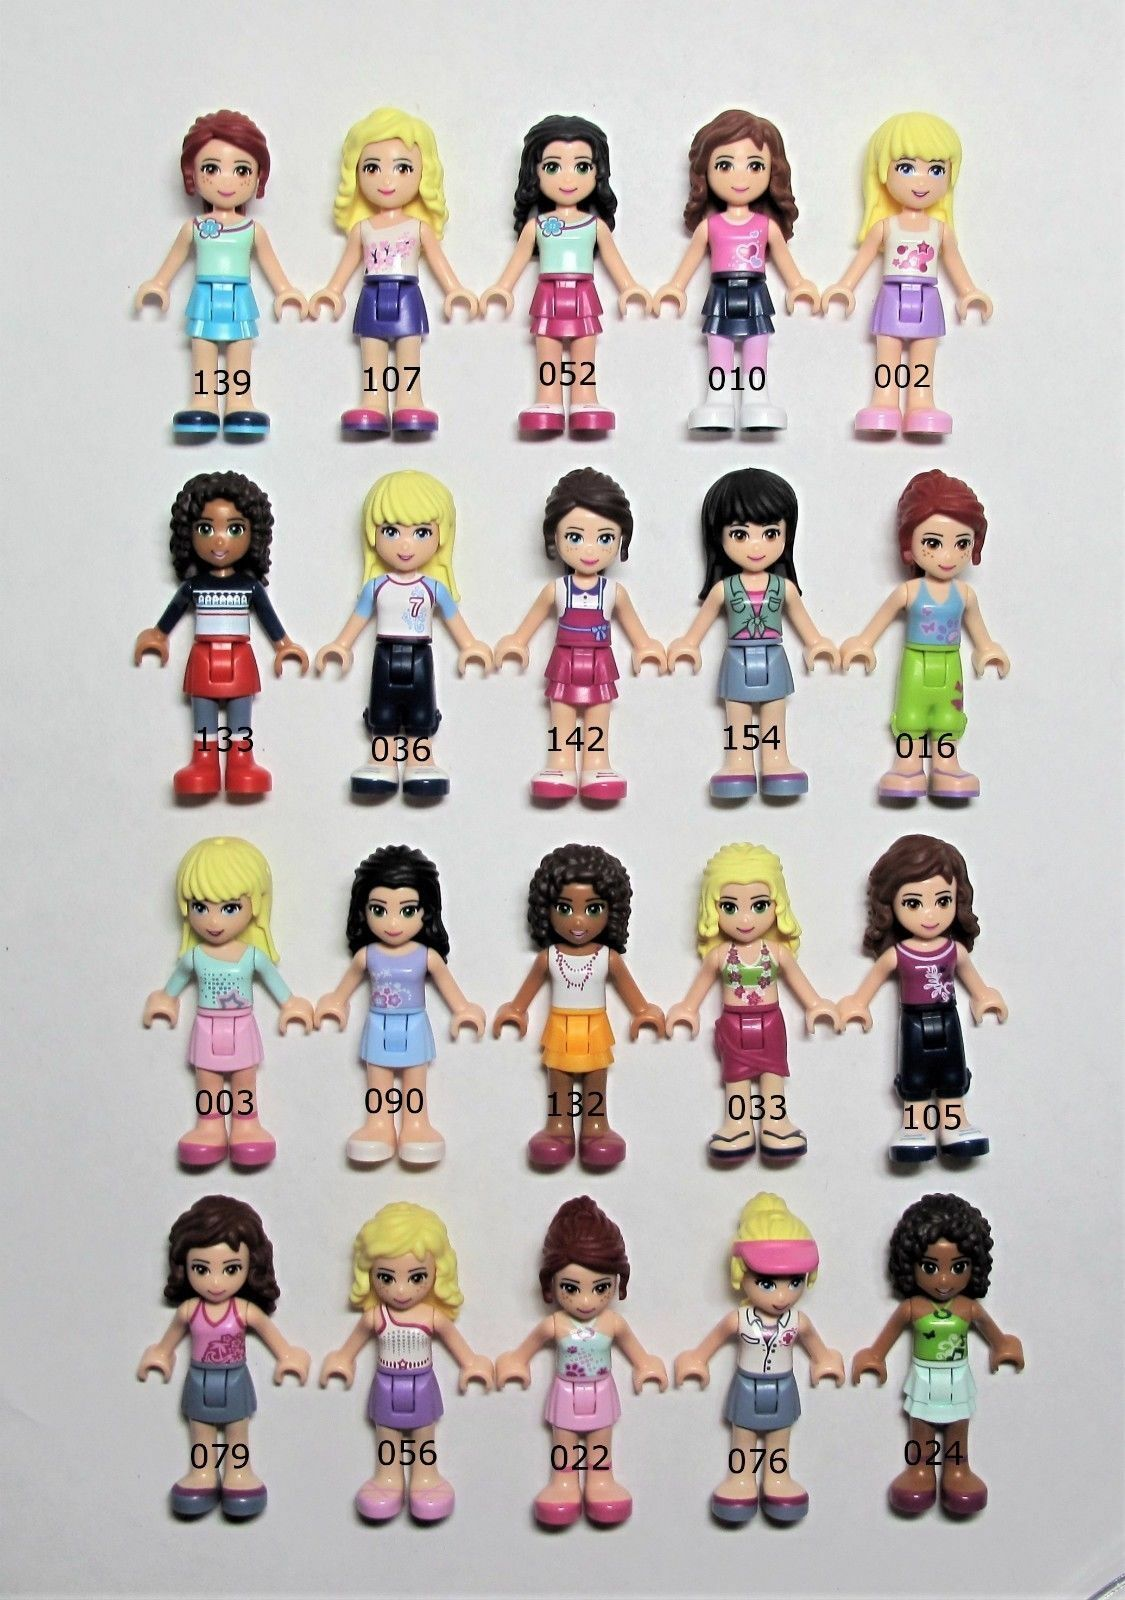 NEW Lego Lot of 20 All All All Genuine Lego Friends Minifigures Girls Dolls CUTE   4G 0fbeda